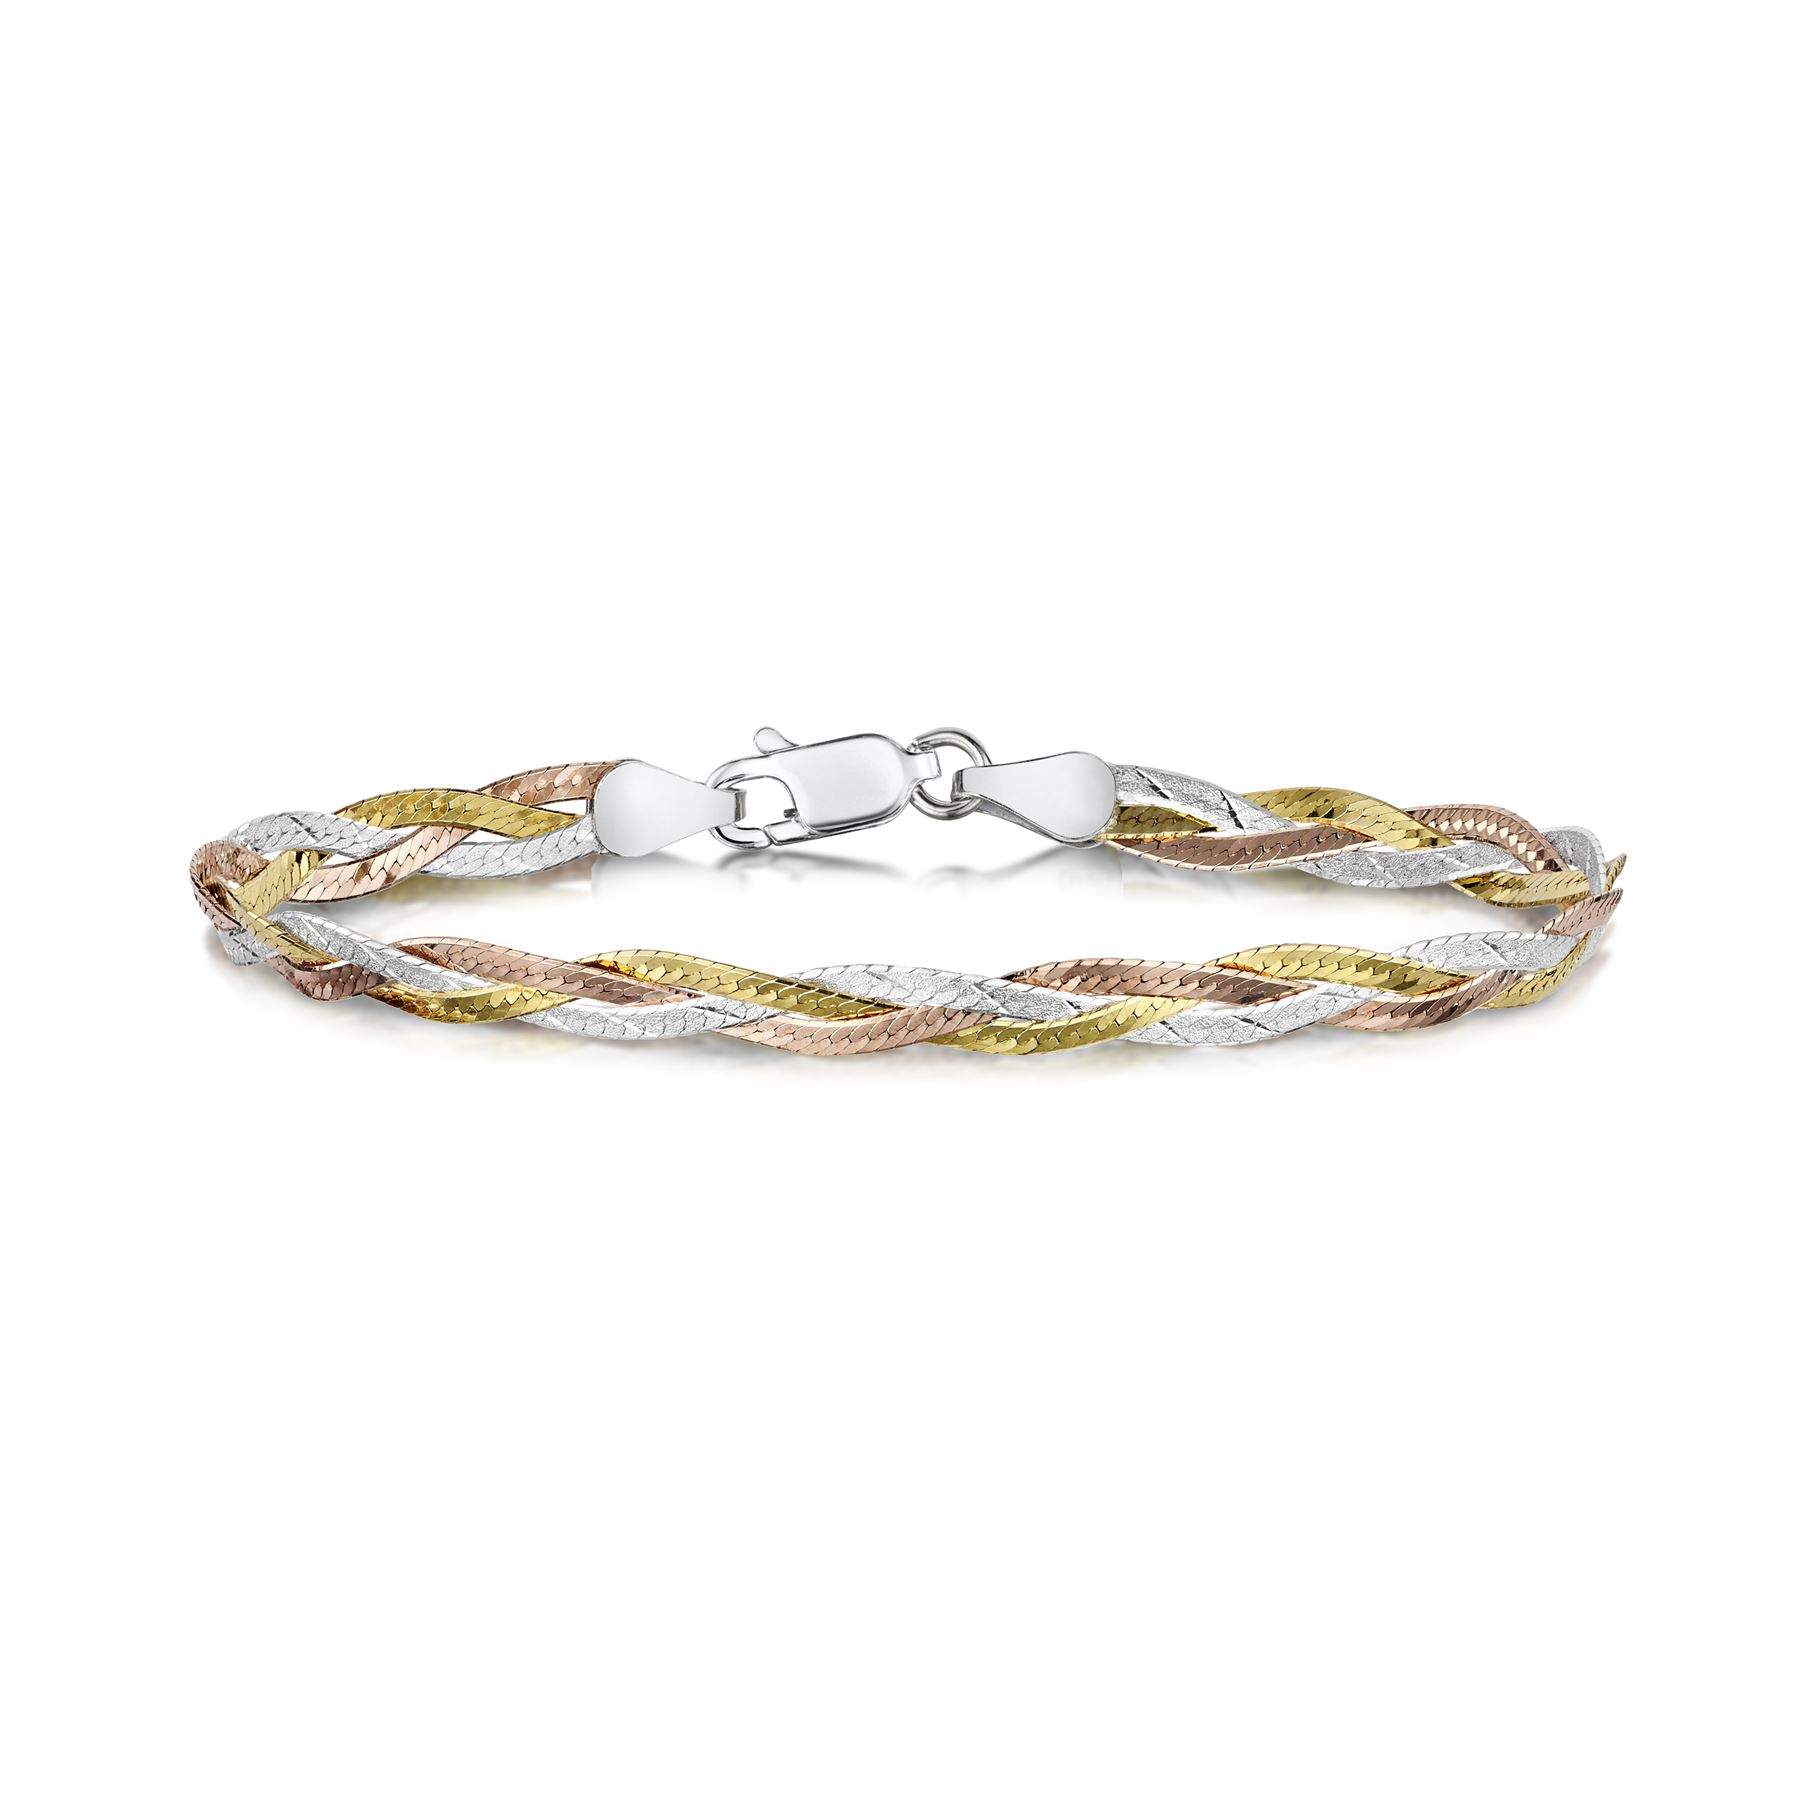 Amberta-Jewelry-Genuine-925-Sterling-Silver-Bracelet-Bangle-Chain-Made-in-Italy thumbnail 102